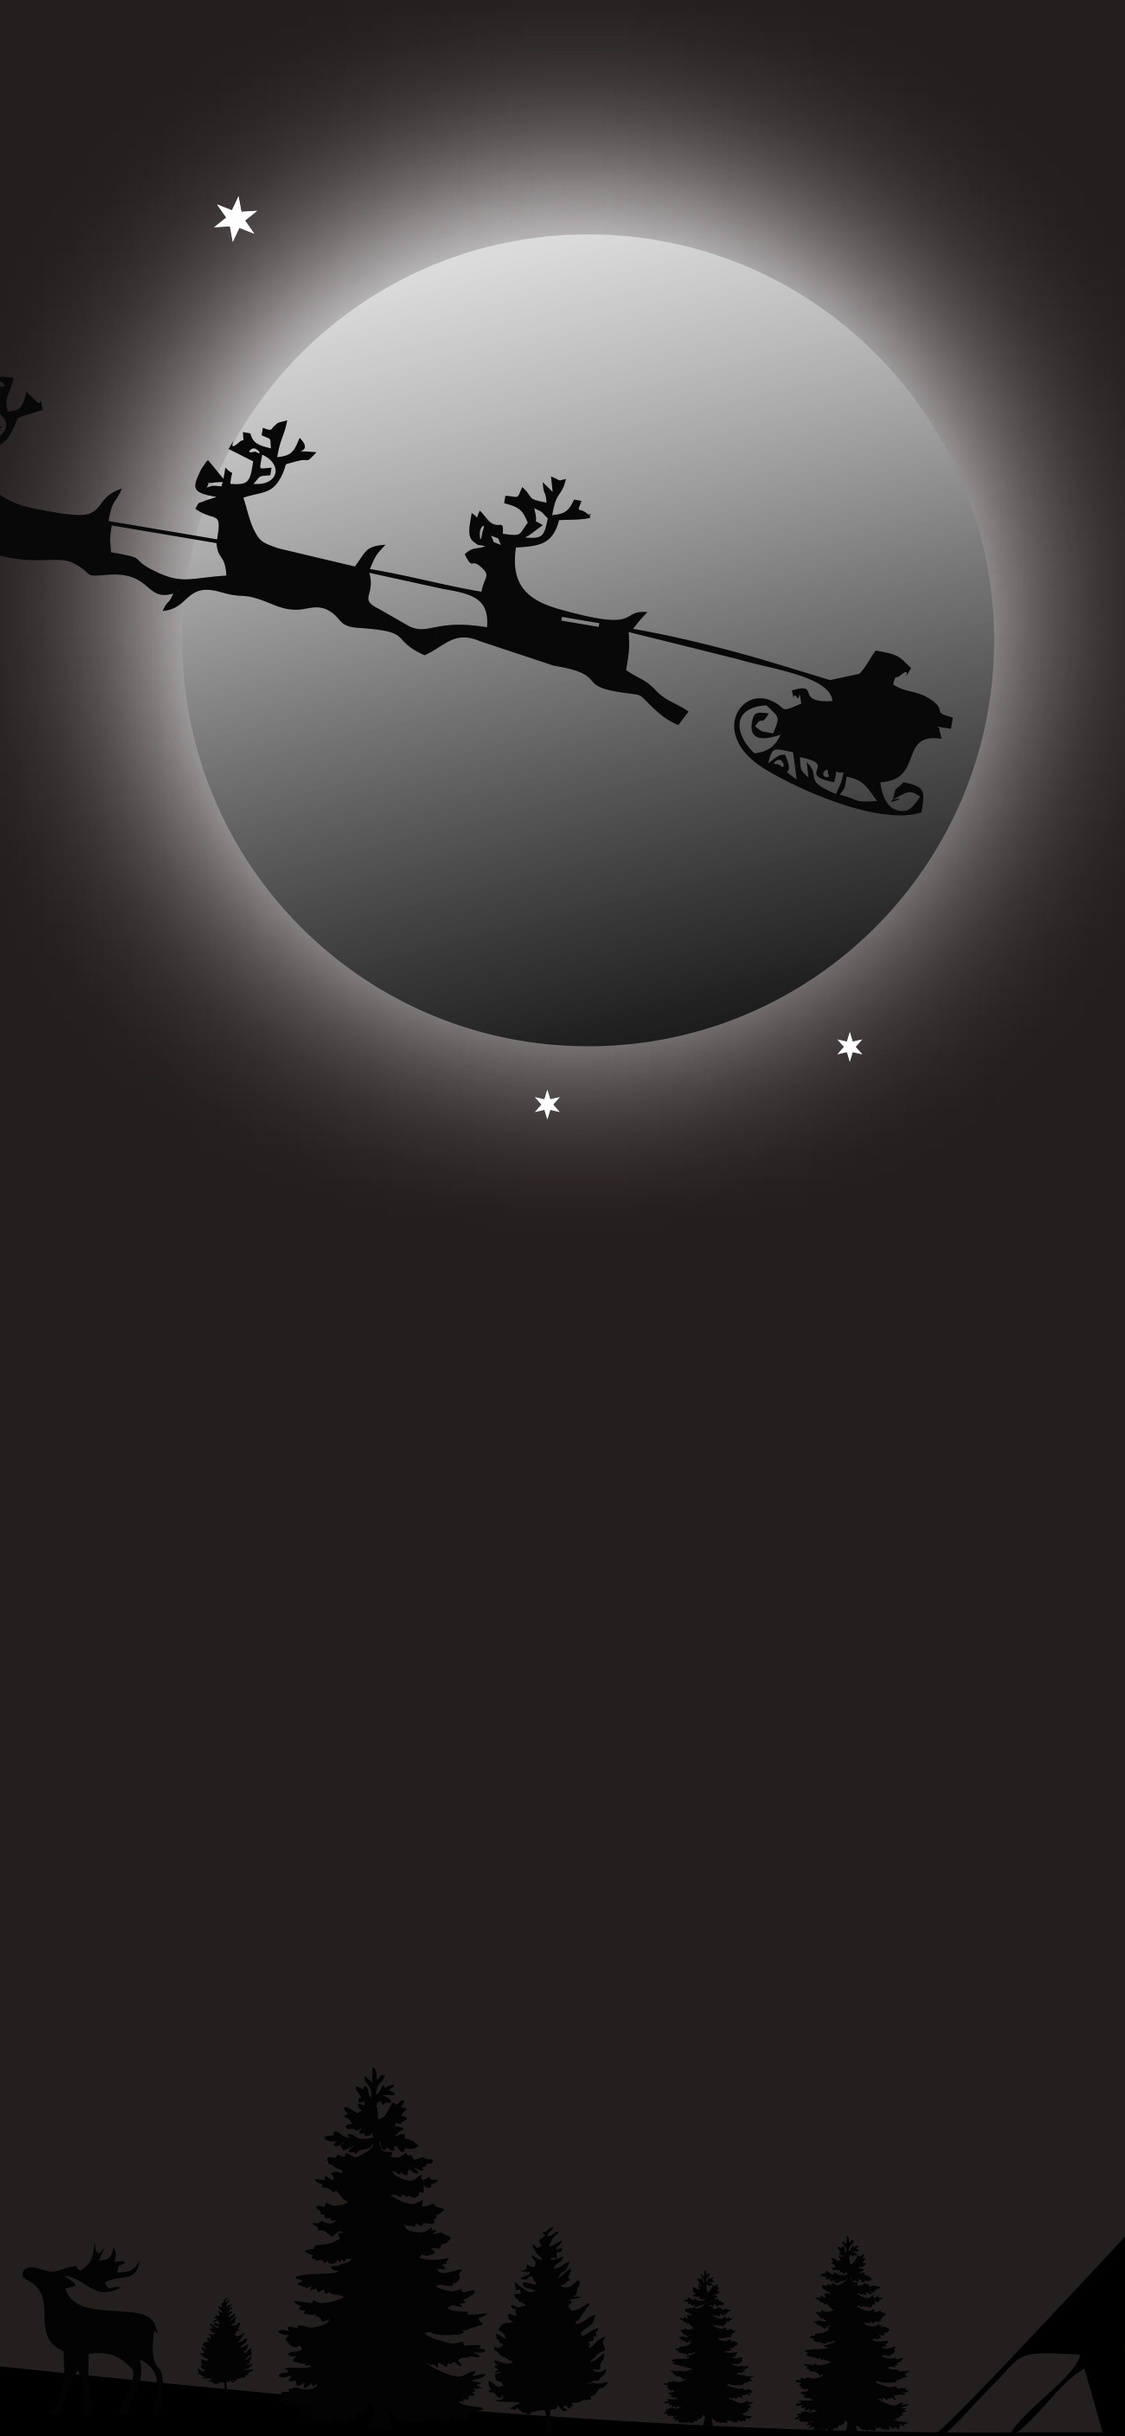 1125x2436 Santa Claus Deer Ride Iphone Xs Iphone 10 Iphone X